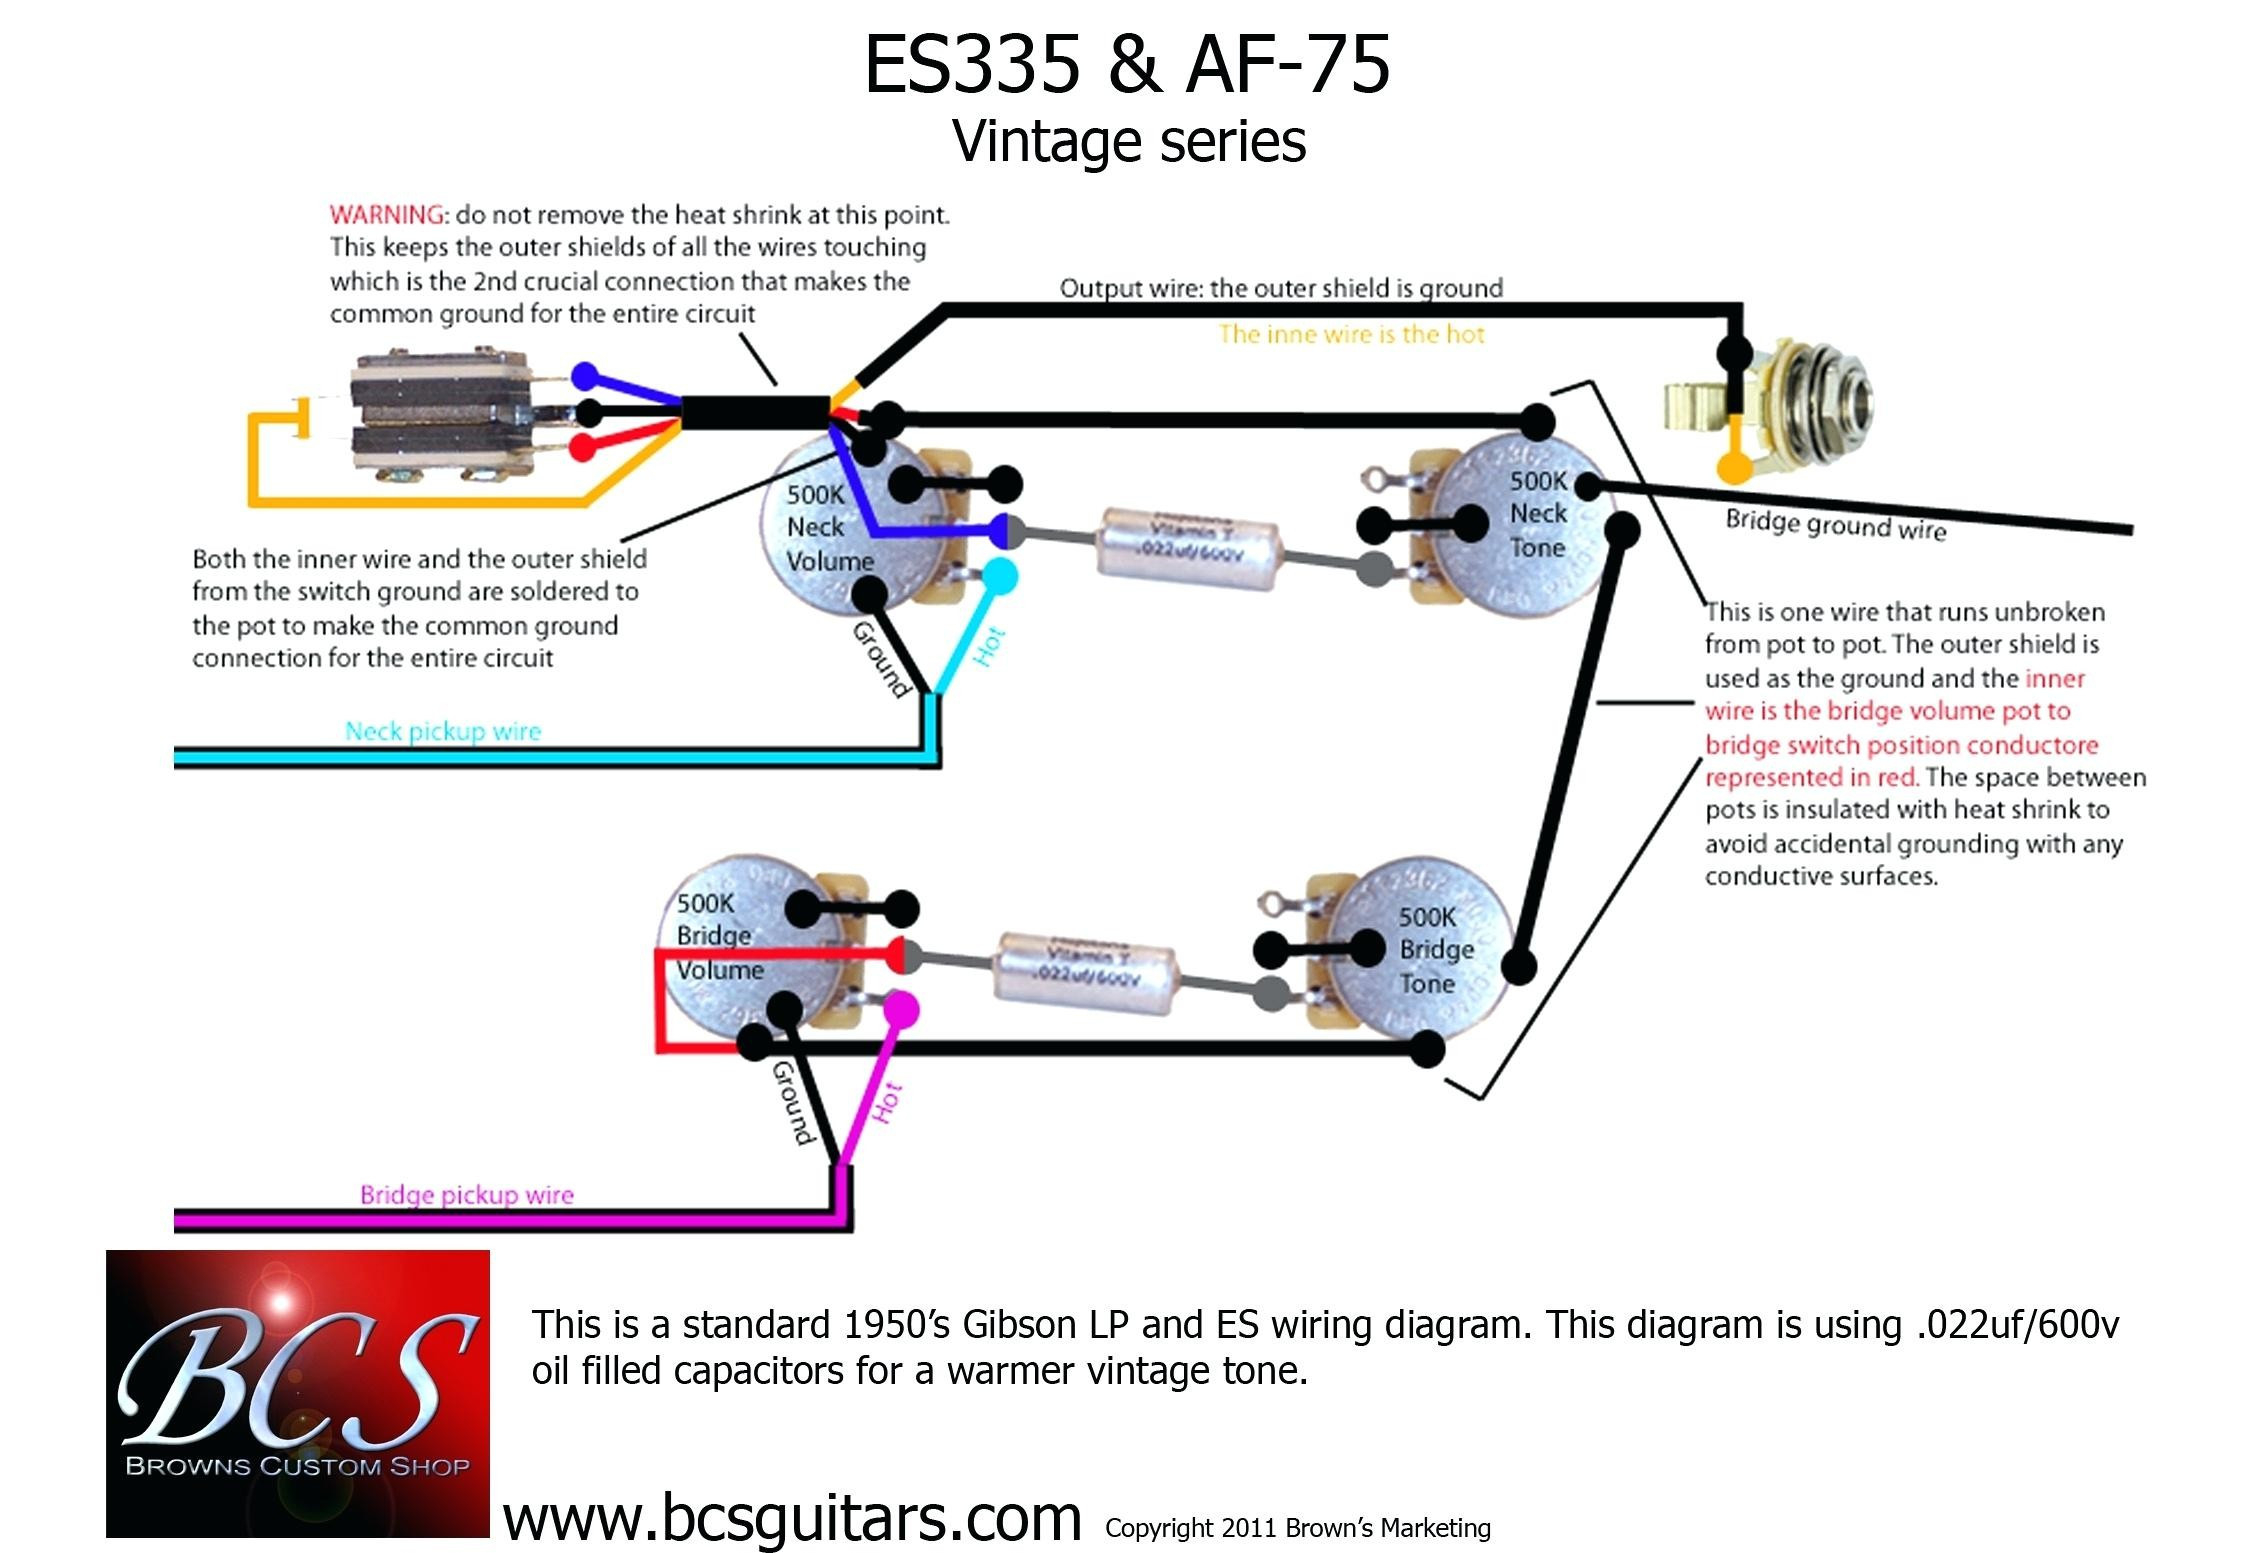 Es 335 Wiring Diagram | WIRING DIAGRAM TUTORIAL Epiphone Pickup Wiring Diagram on epiphone explorer wiring diagram, epiphone guitar wiring diagram, epiphone thunderbird wiring diagram, epiphone coil tap diagram, epiphone humbucker wiring diagram,